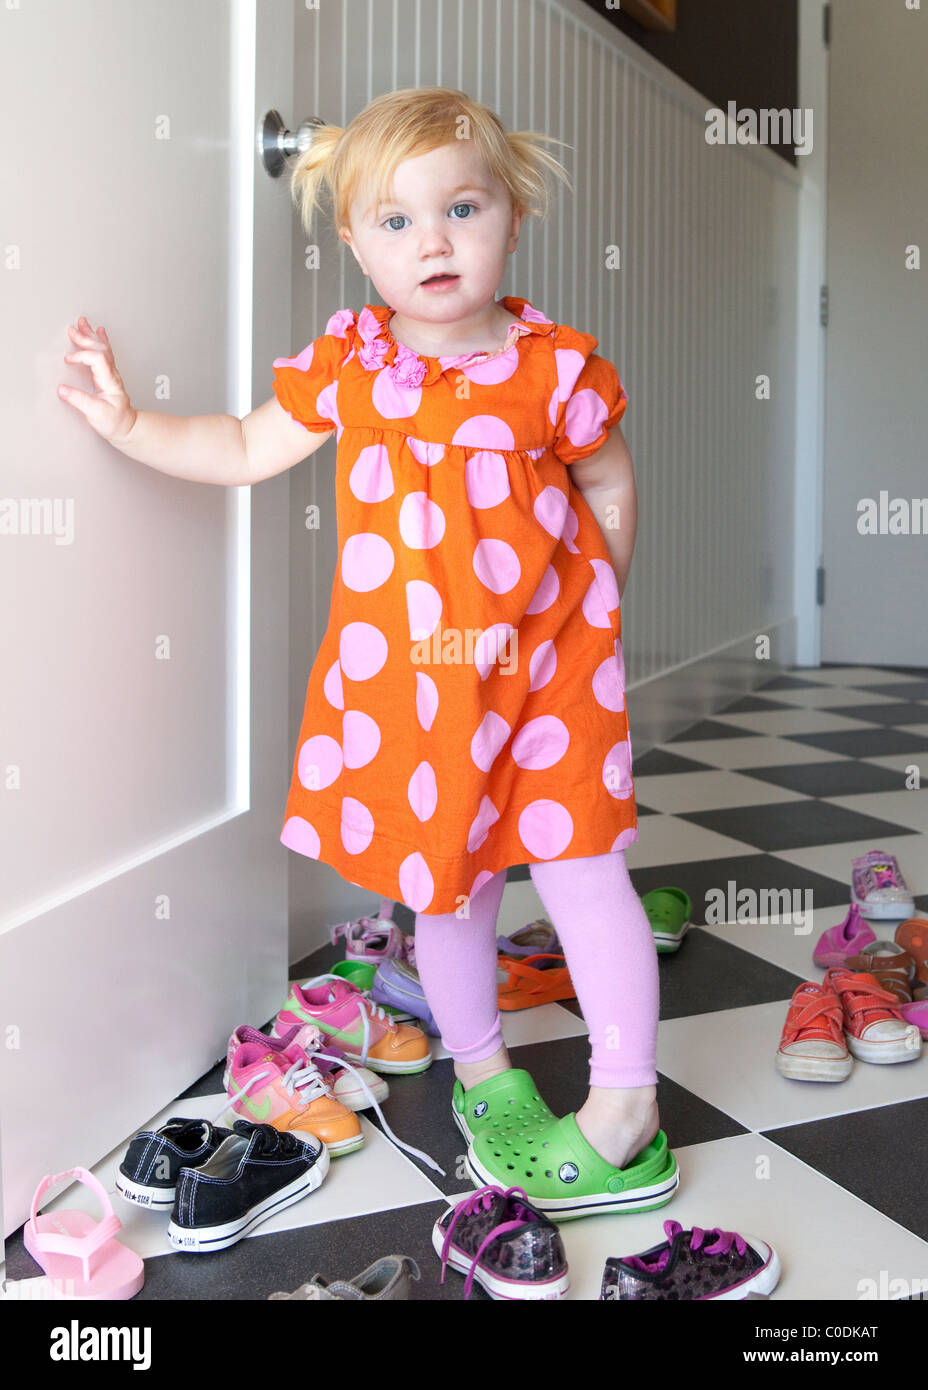 Little girl deciding which shoes to wear - Stock Image